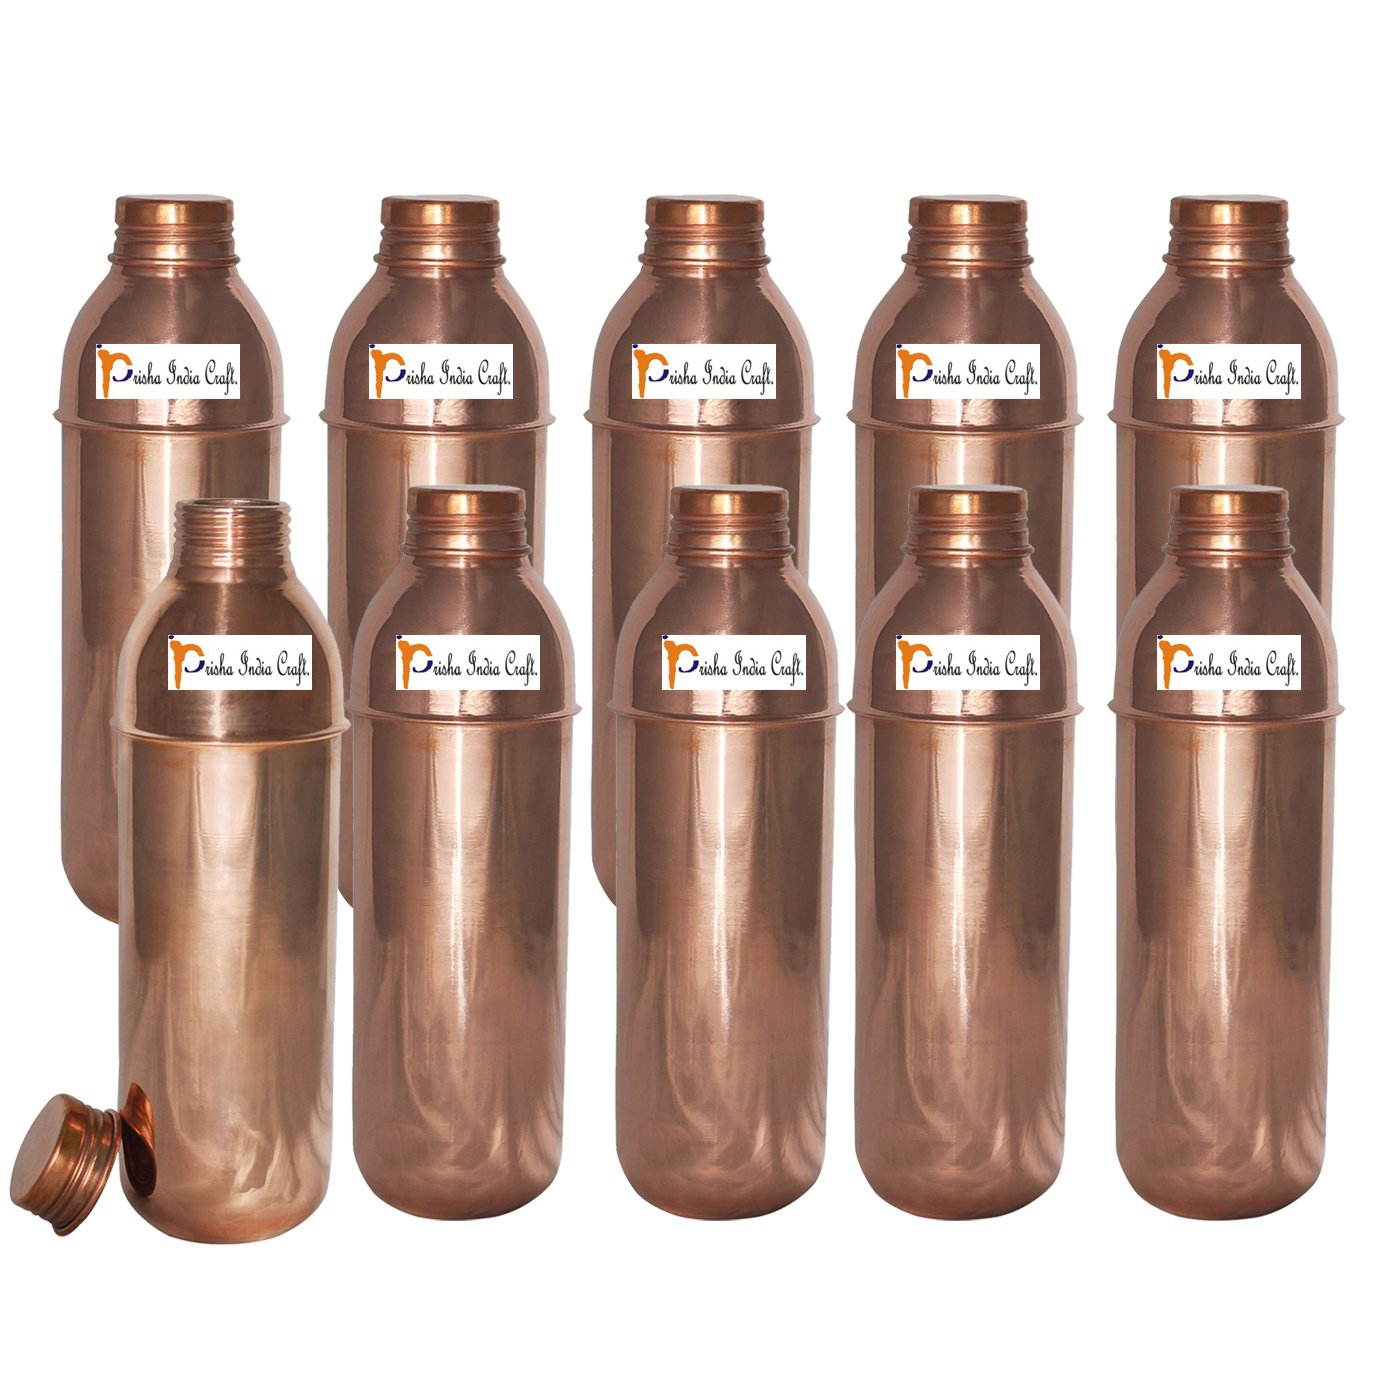 Prisha India Craft (Set of 10) Copper New Bislery Stylish Bottle with Ayurvedic benefited - 800 ML / 27 oz Thermos Bottles - 100% Genuine Copper Water Bottles